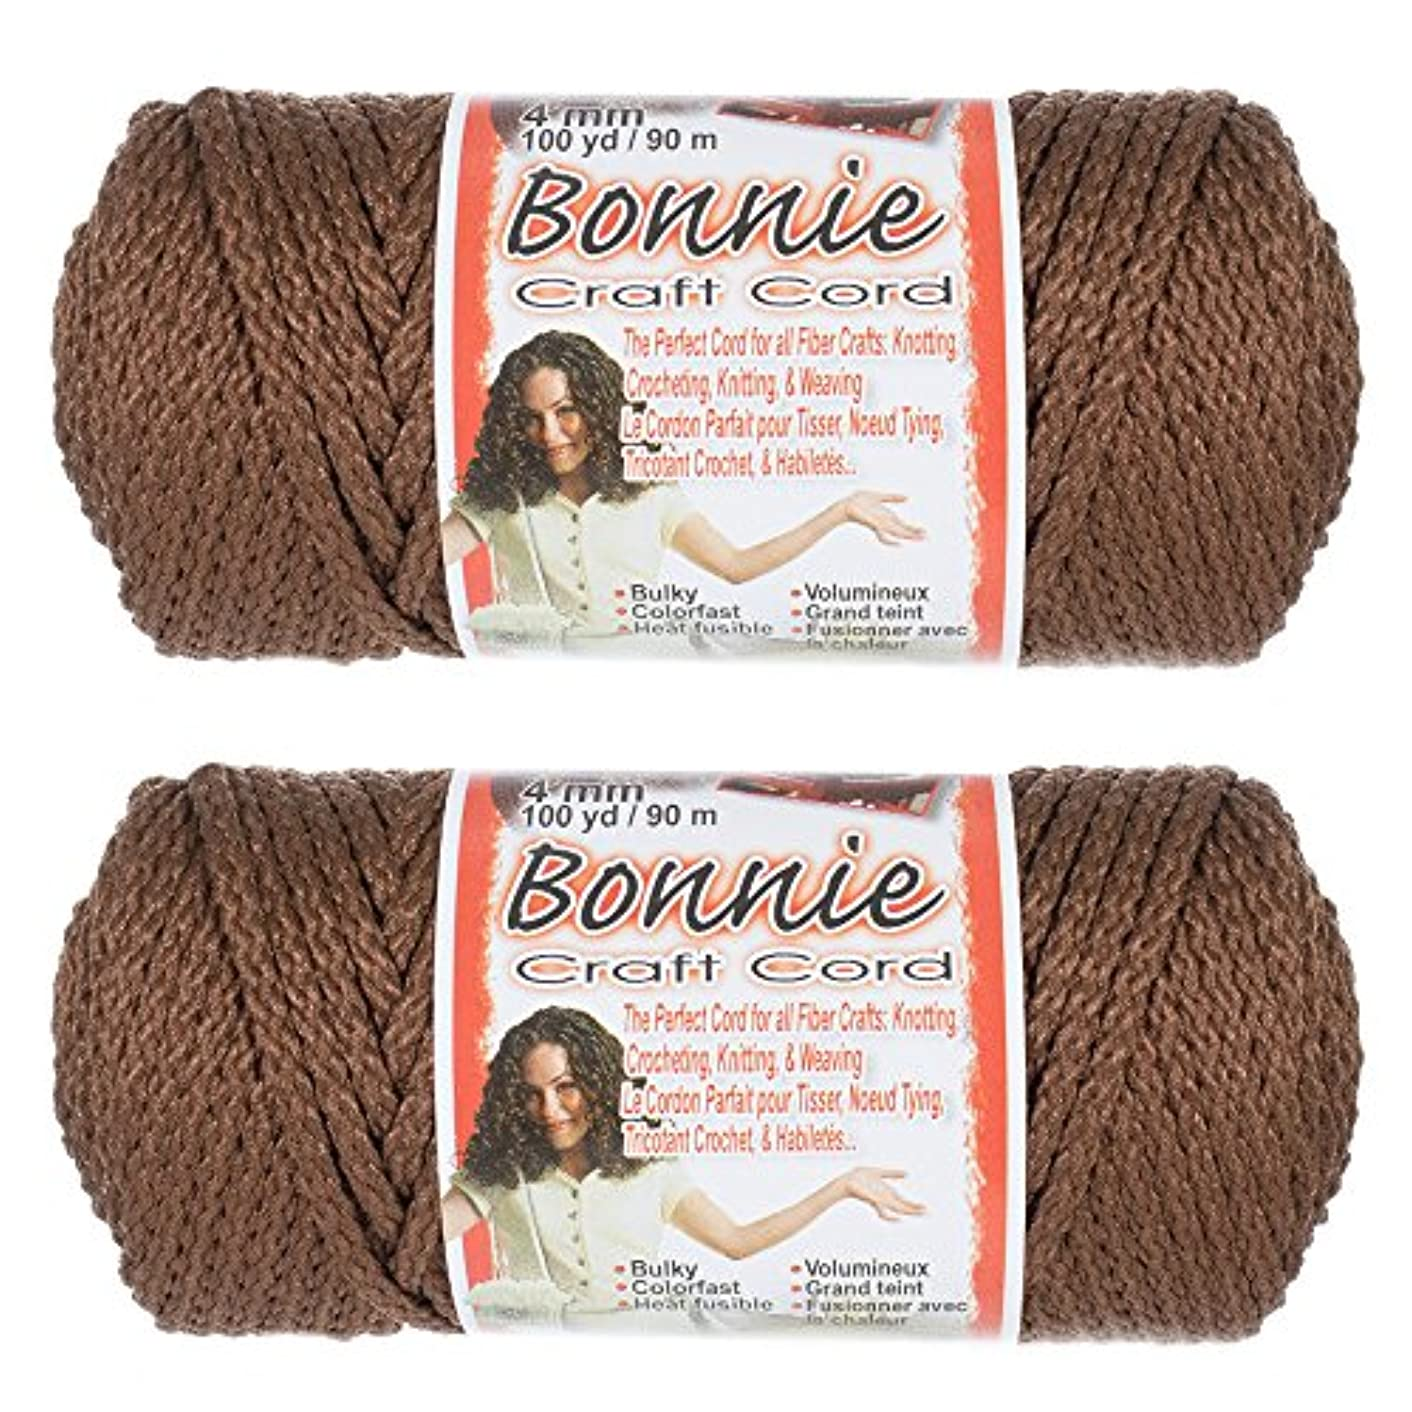 2 Pack Bonnie Macramé Cord - 4mm - 100 yd Lengths - Various Colors